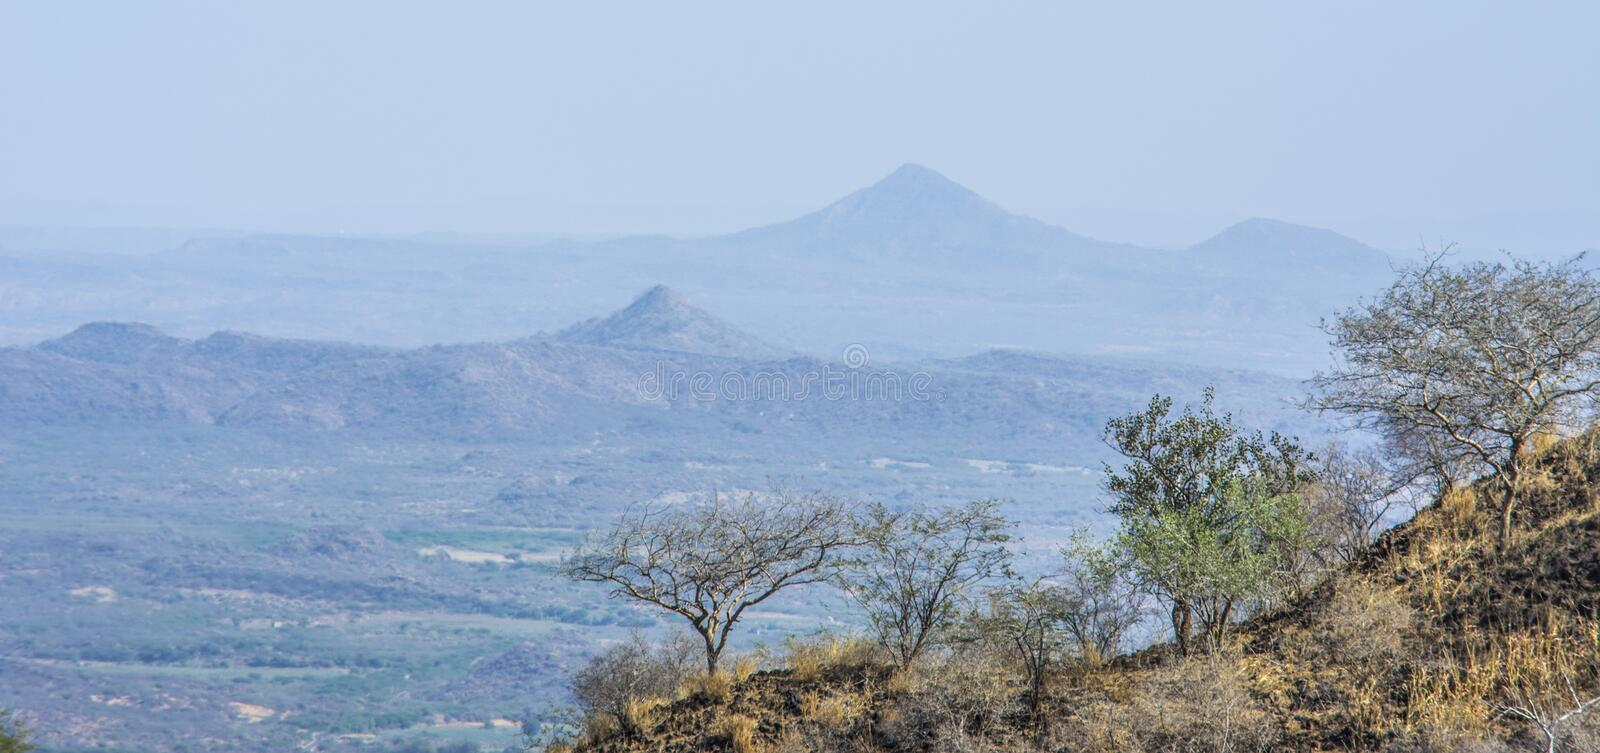 3 Layers of mountains with dry forest stock photo